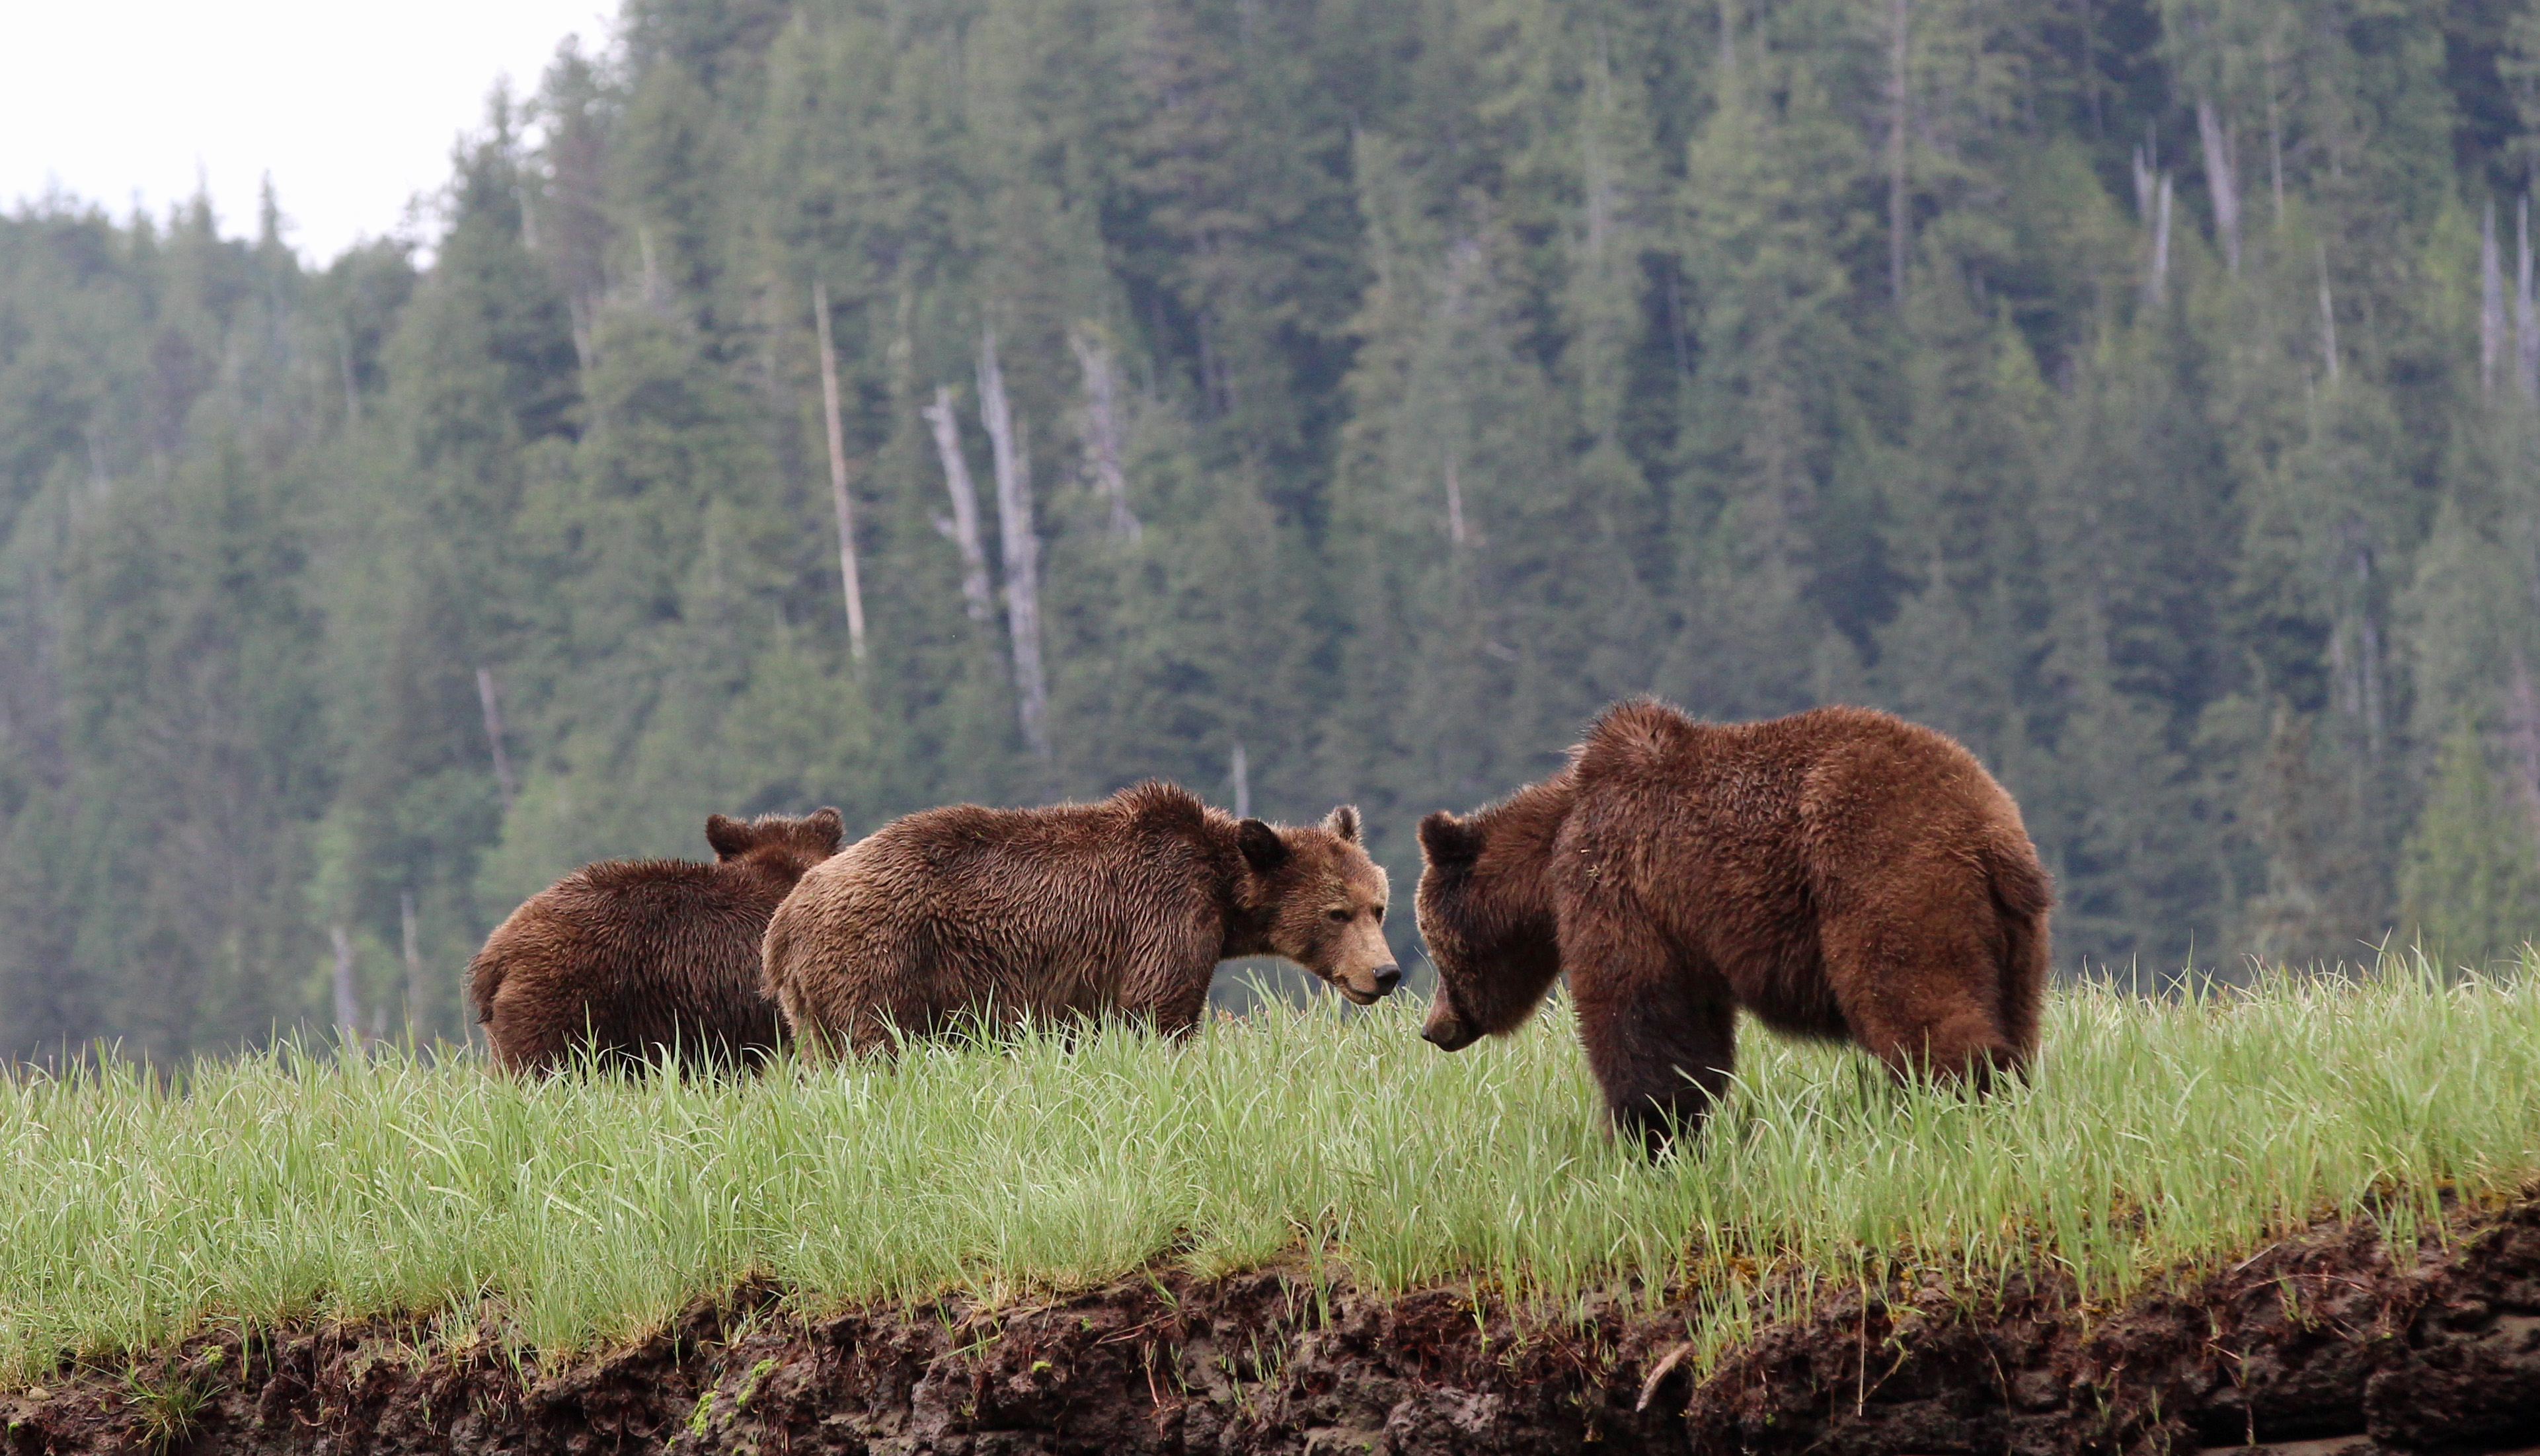 A female grizzly with her cubs on the Nekite River in the Great Bear Rainforest.